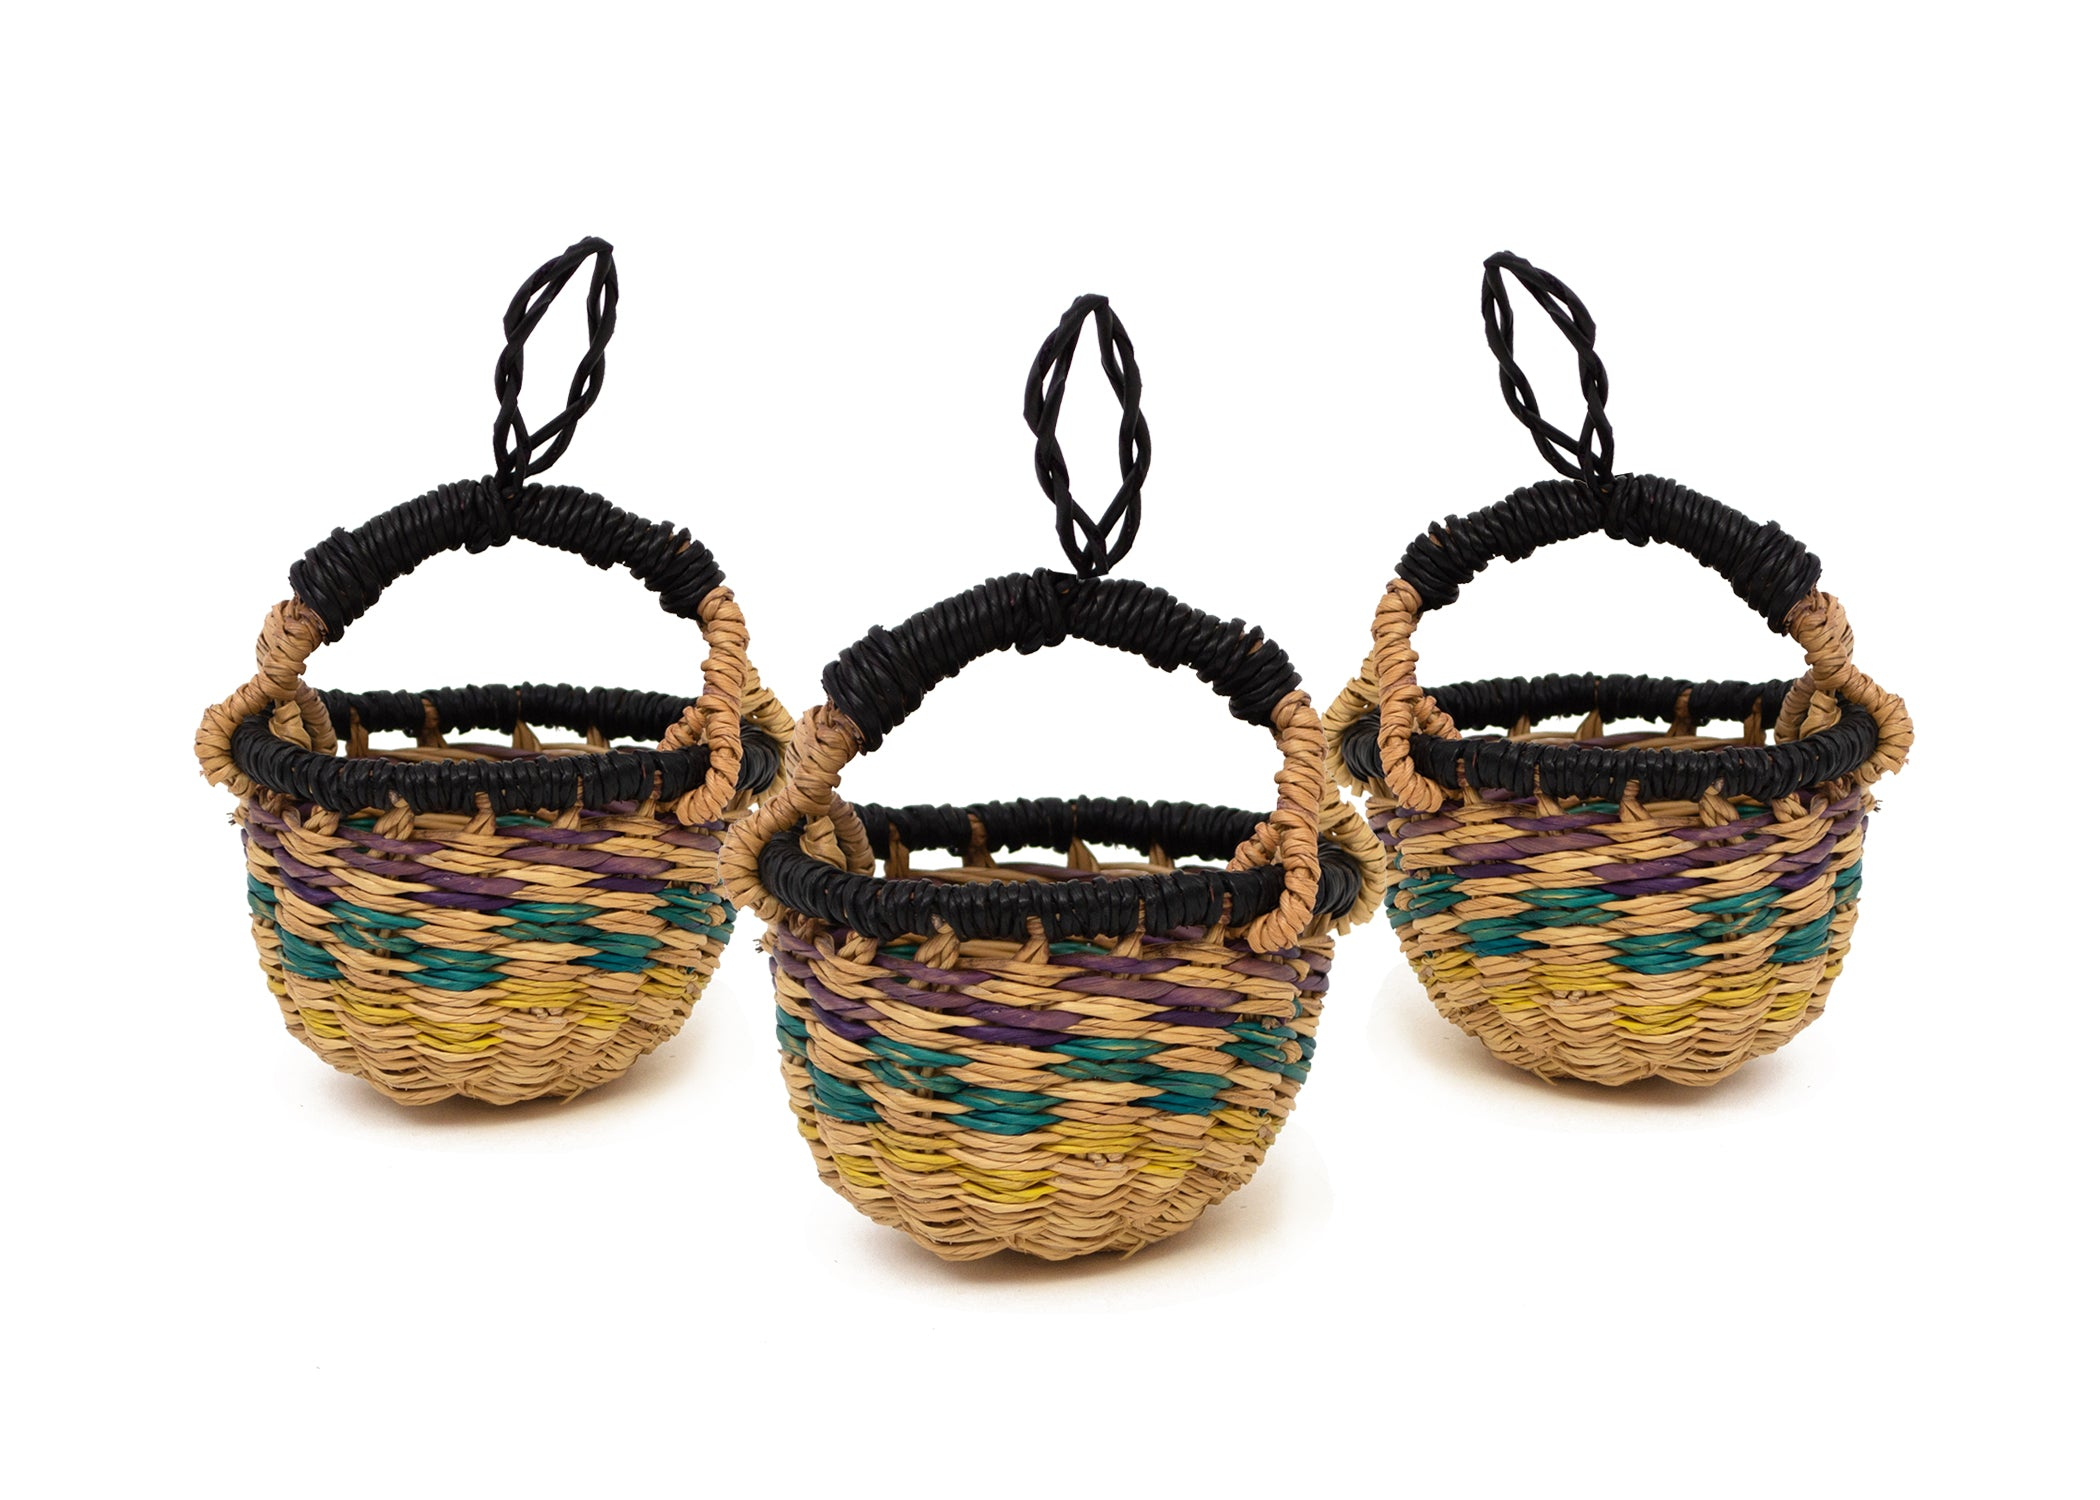 Petite Bolga Basket Ornaments, Set of 3 - KAZI - Artisan made high quality home decor and wall art